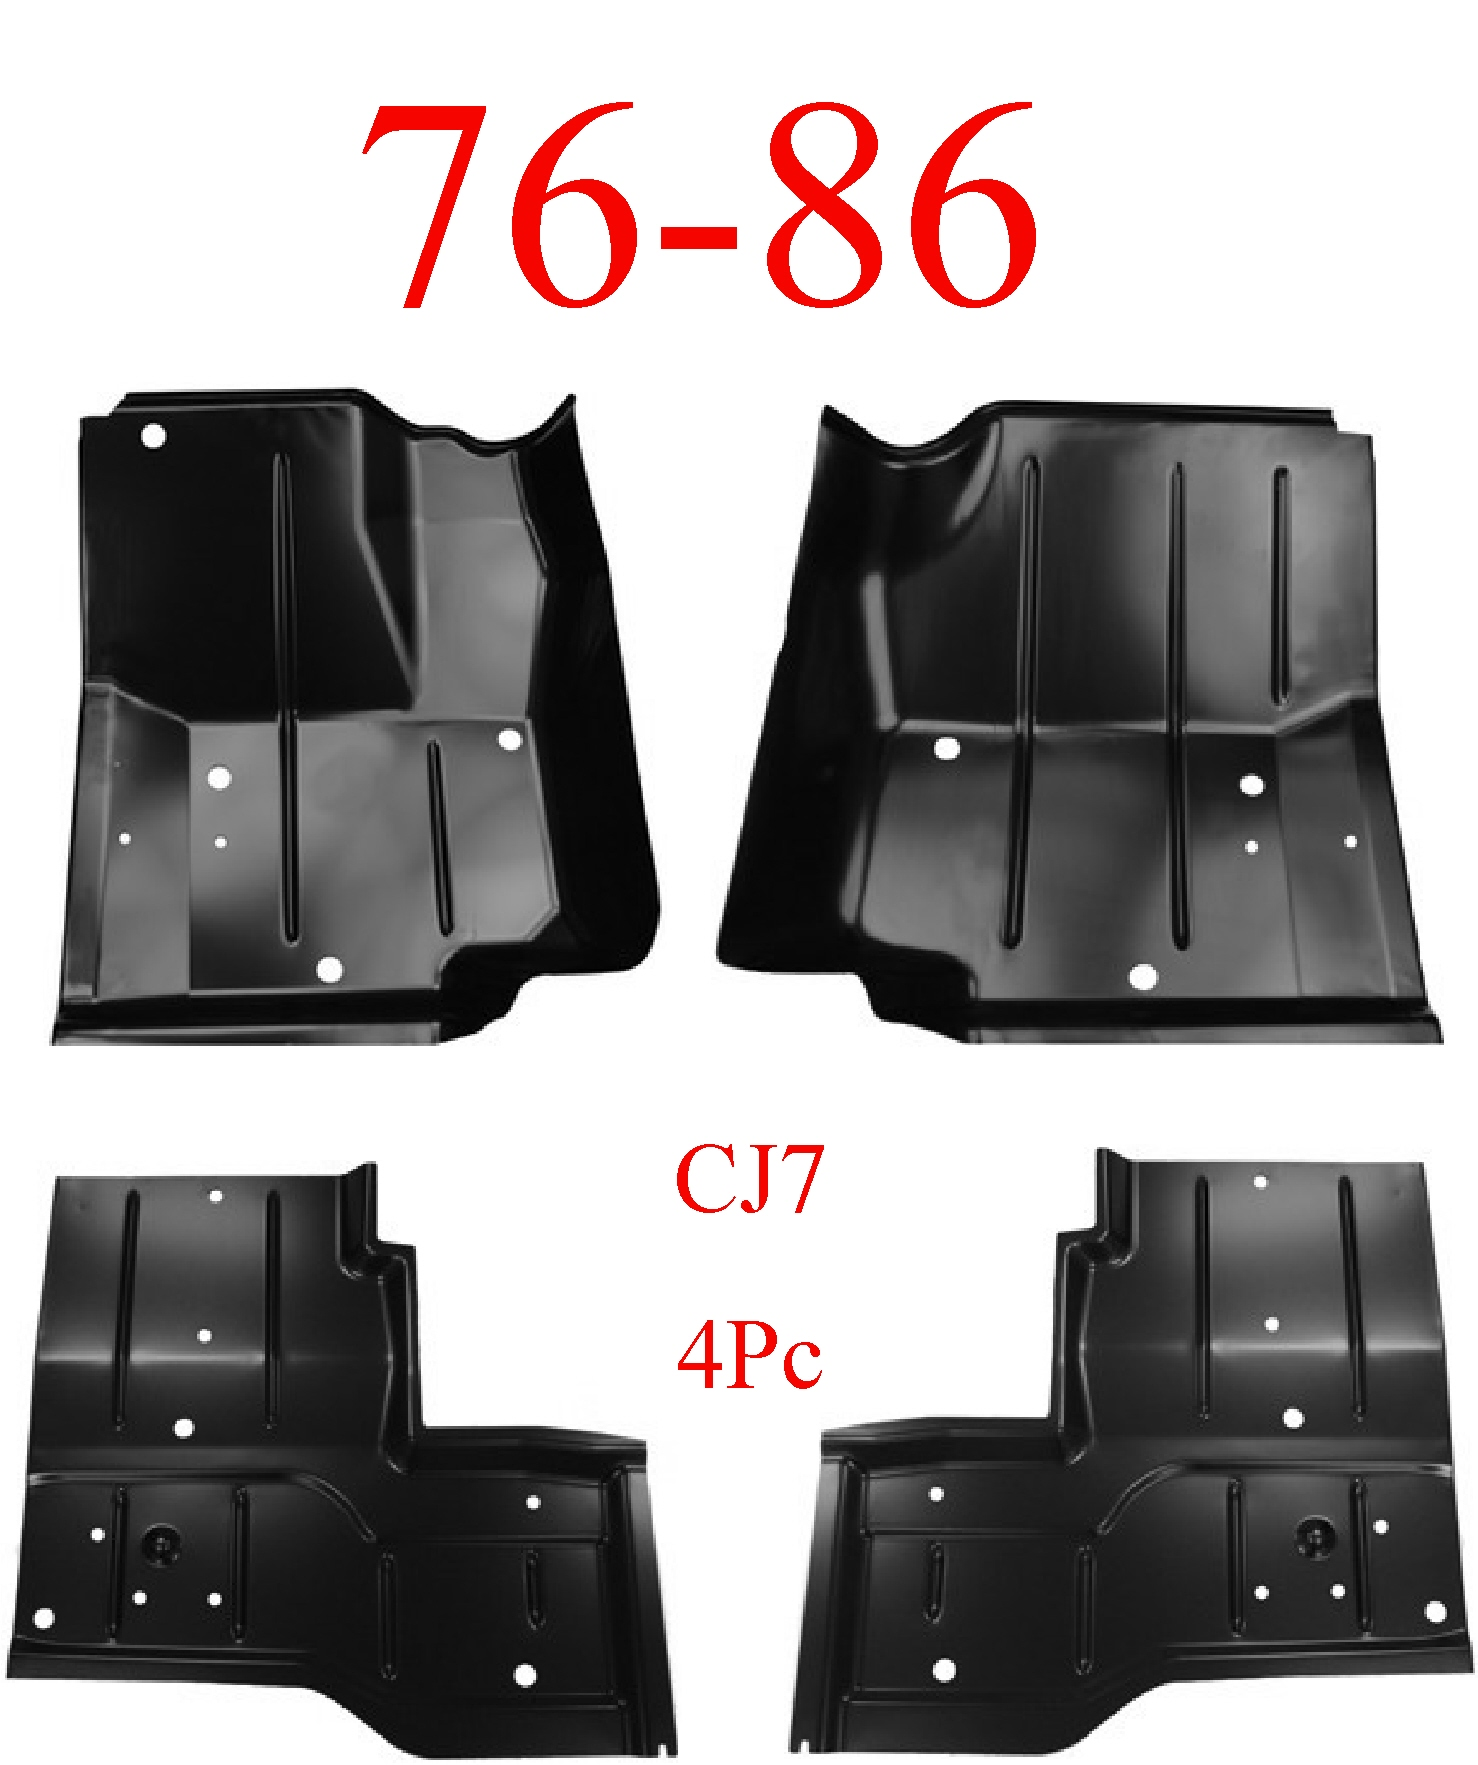 76-86 Jeep CJ7 4pc Floor Pan Set